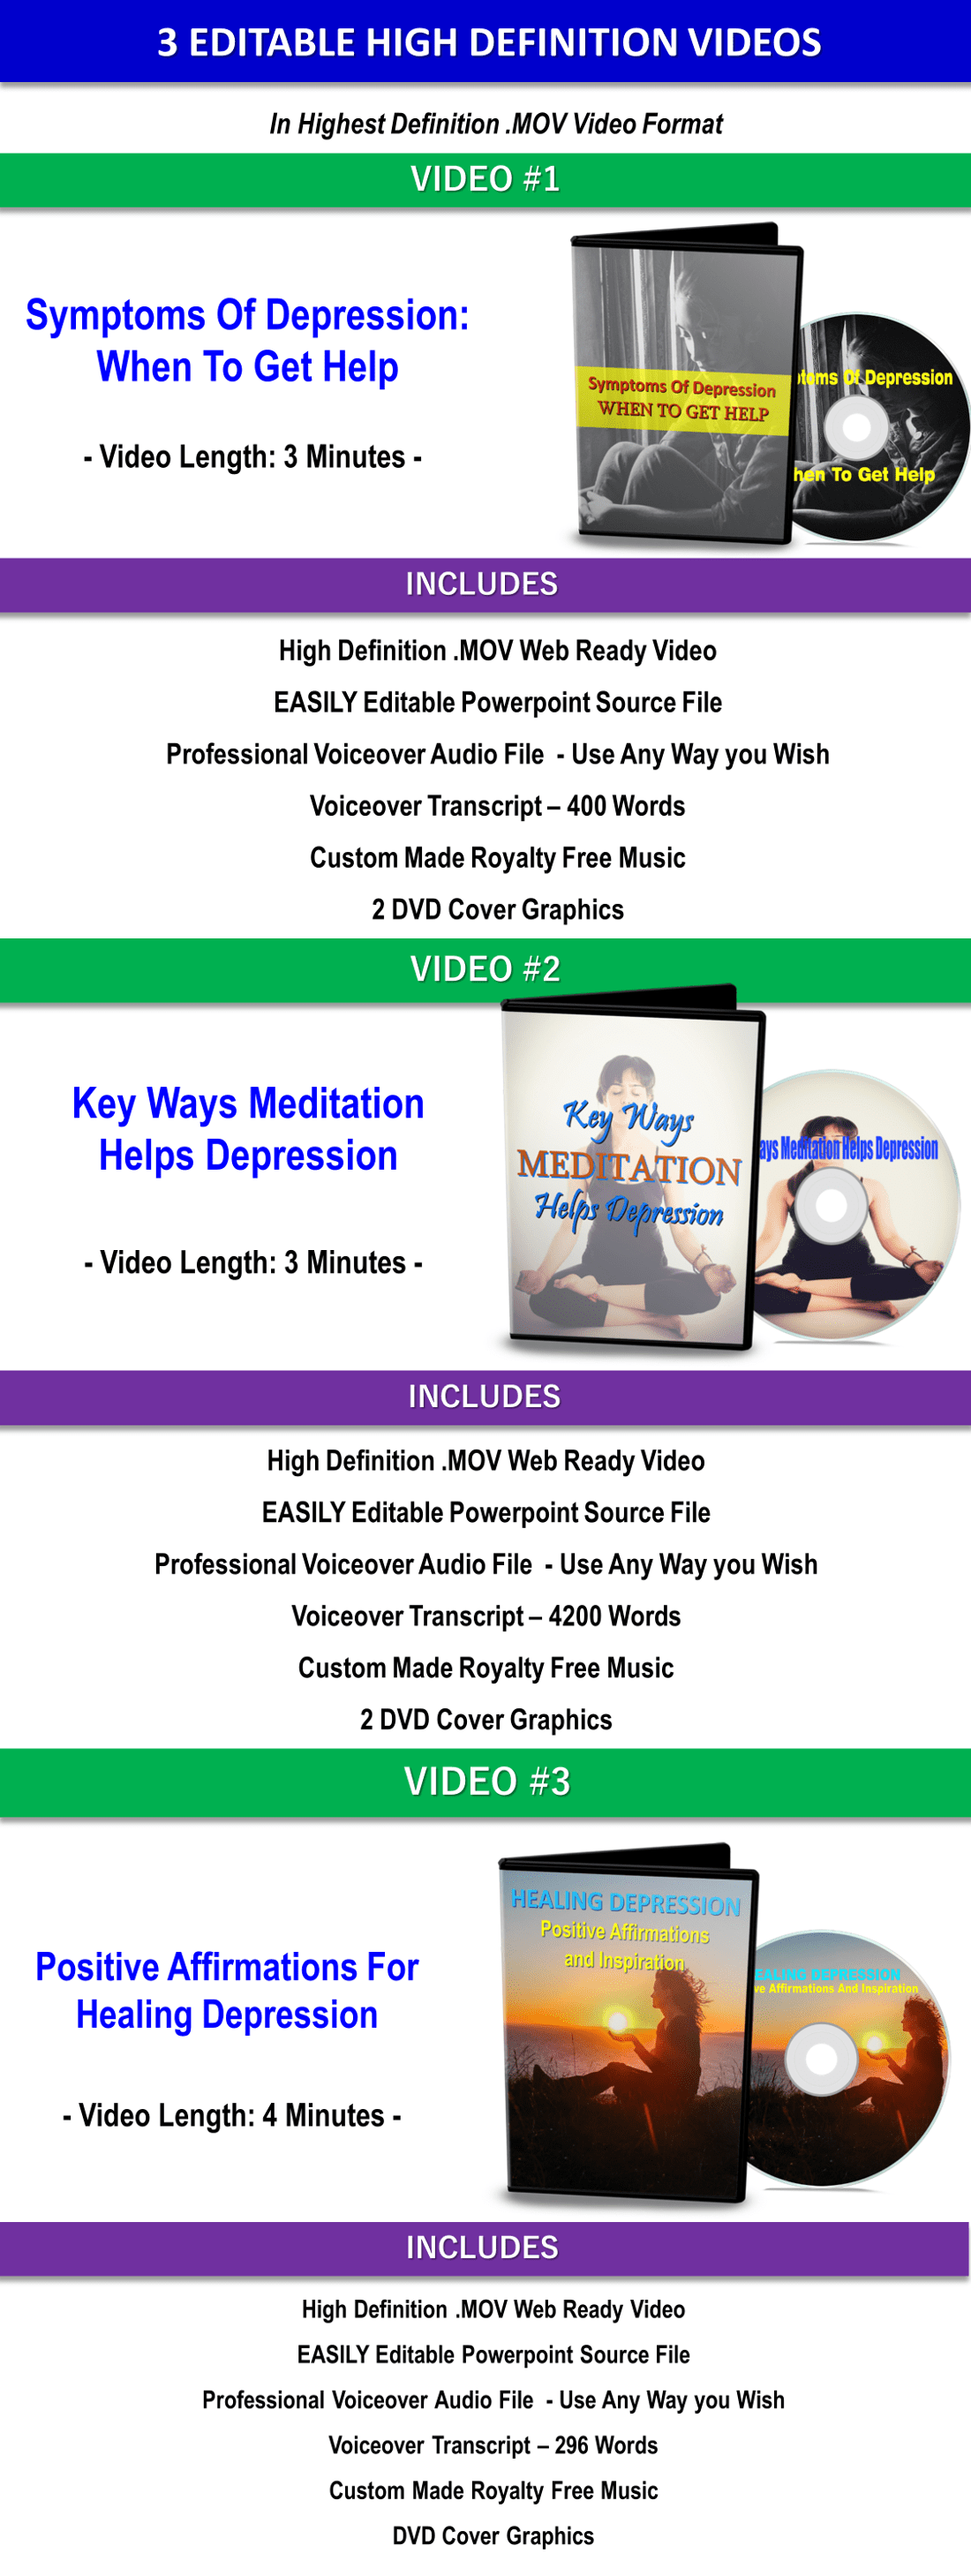 Affirmations + 13 Guided Meditations Get Through Hard Times - PLR Rights